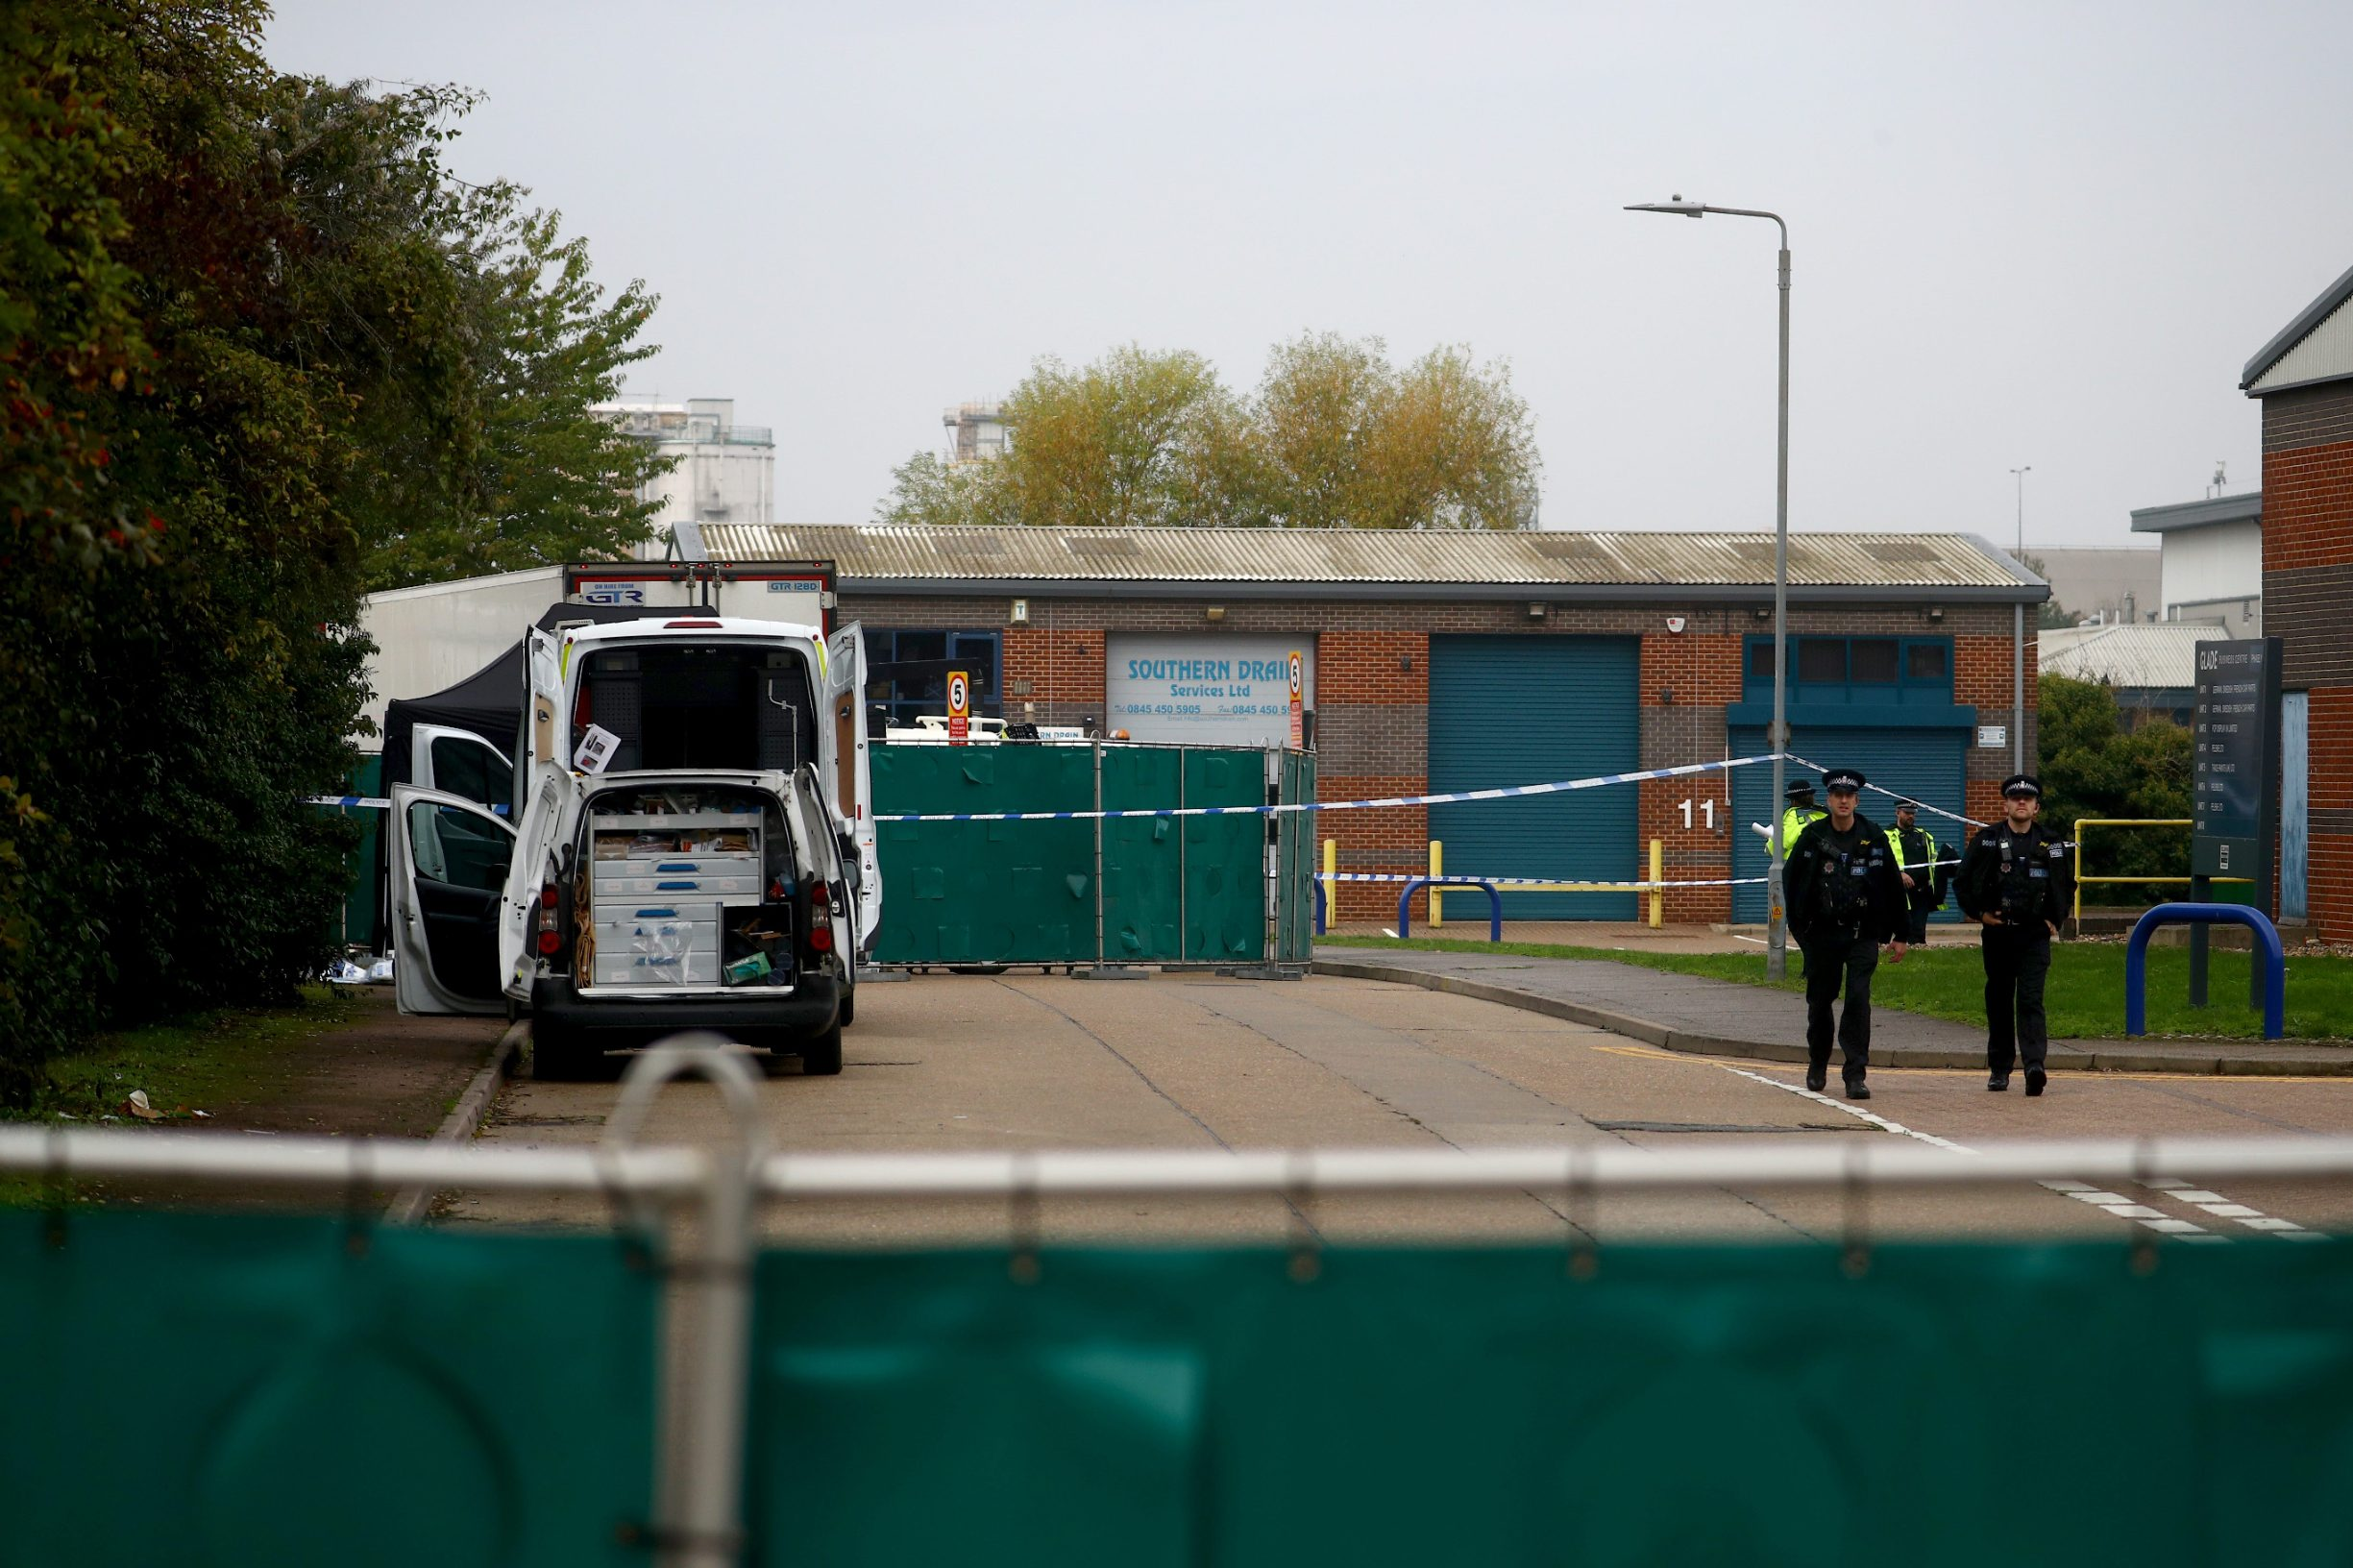 Police officers are seen at the scene where bodies were discovered in a lorry container, in Grays, Essex, Britain October 23, 2019.  REUTERS/Hannah McKay